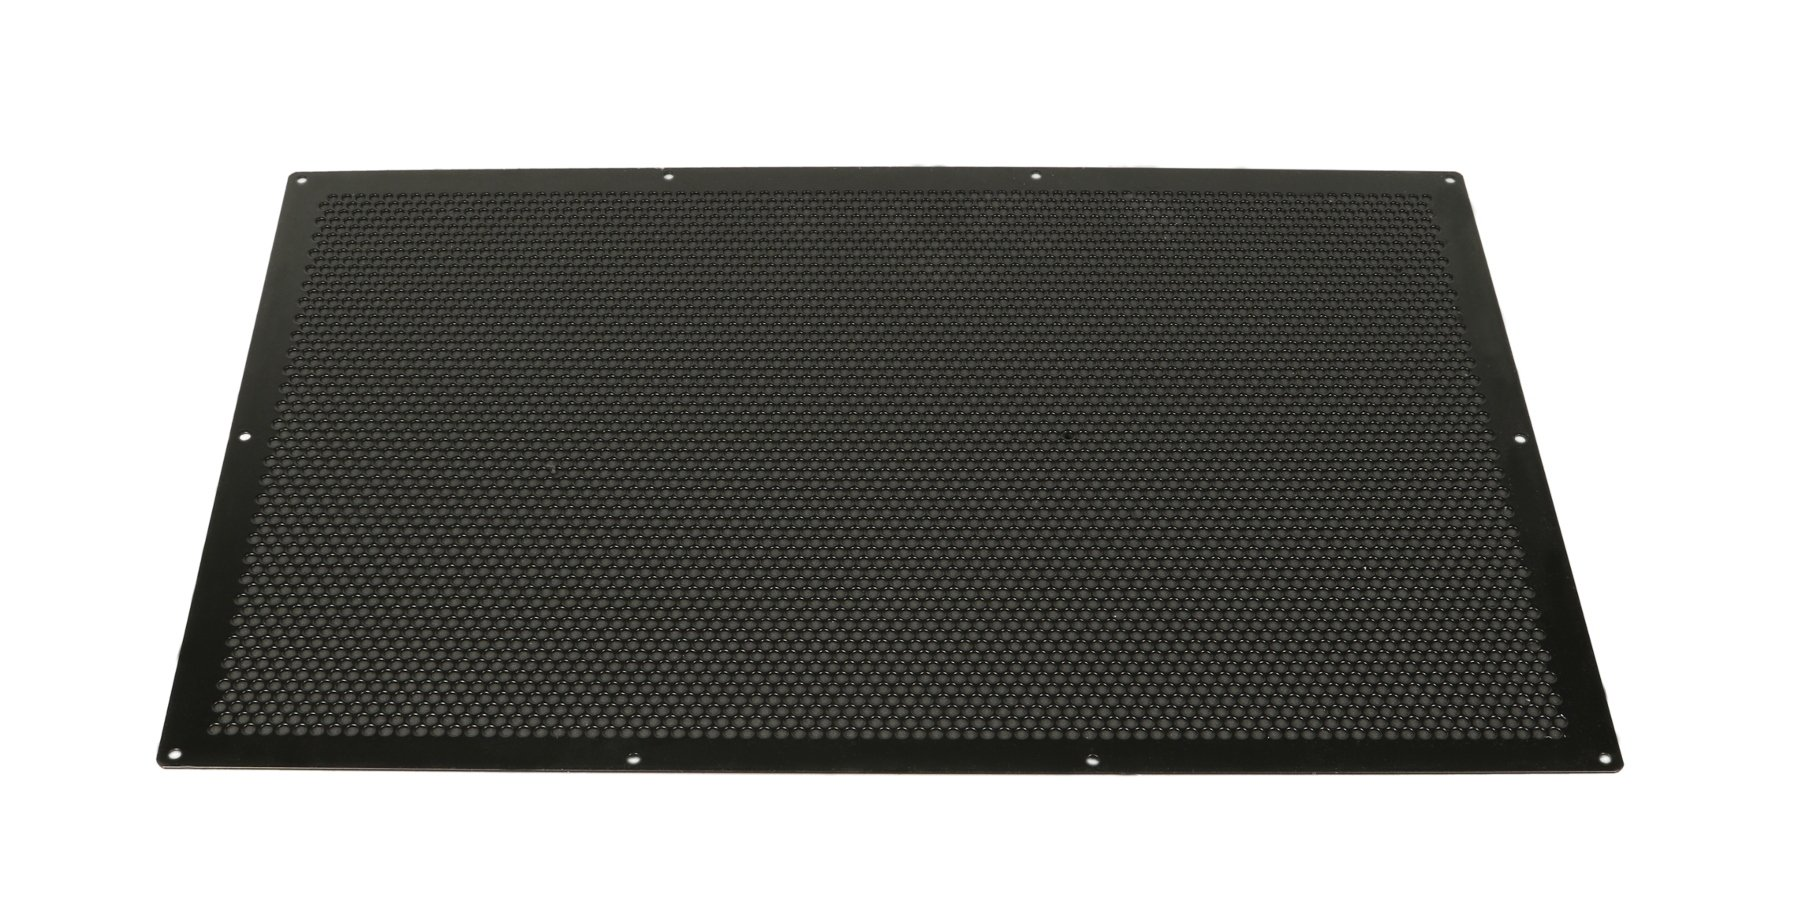 Black Grille for SX300-PI and SX300-PIX